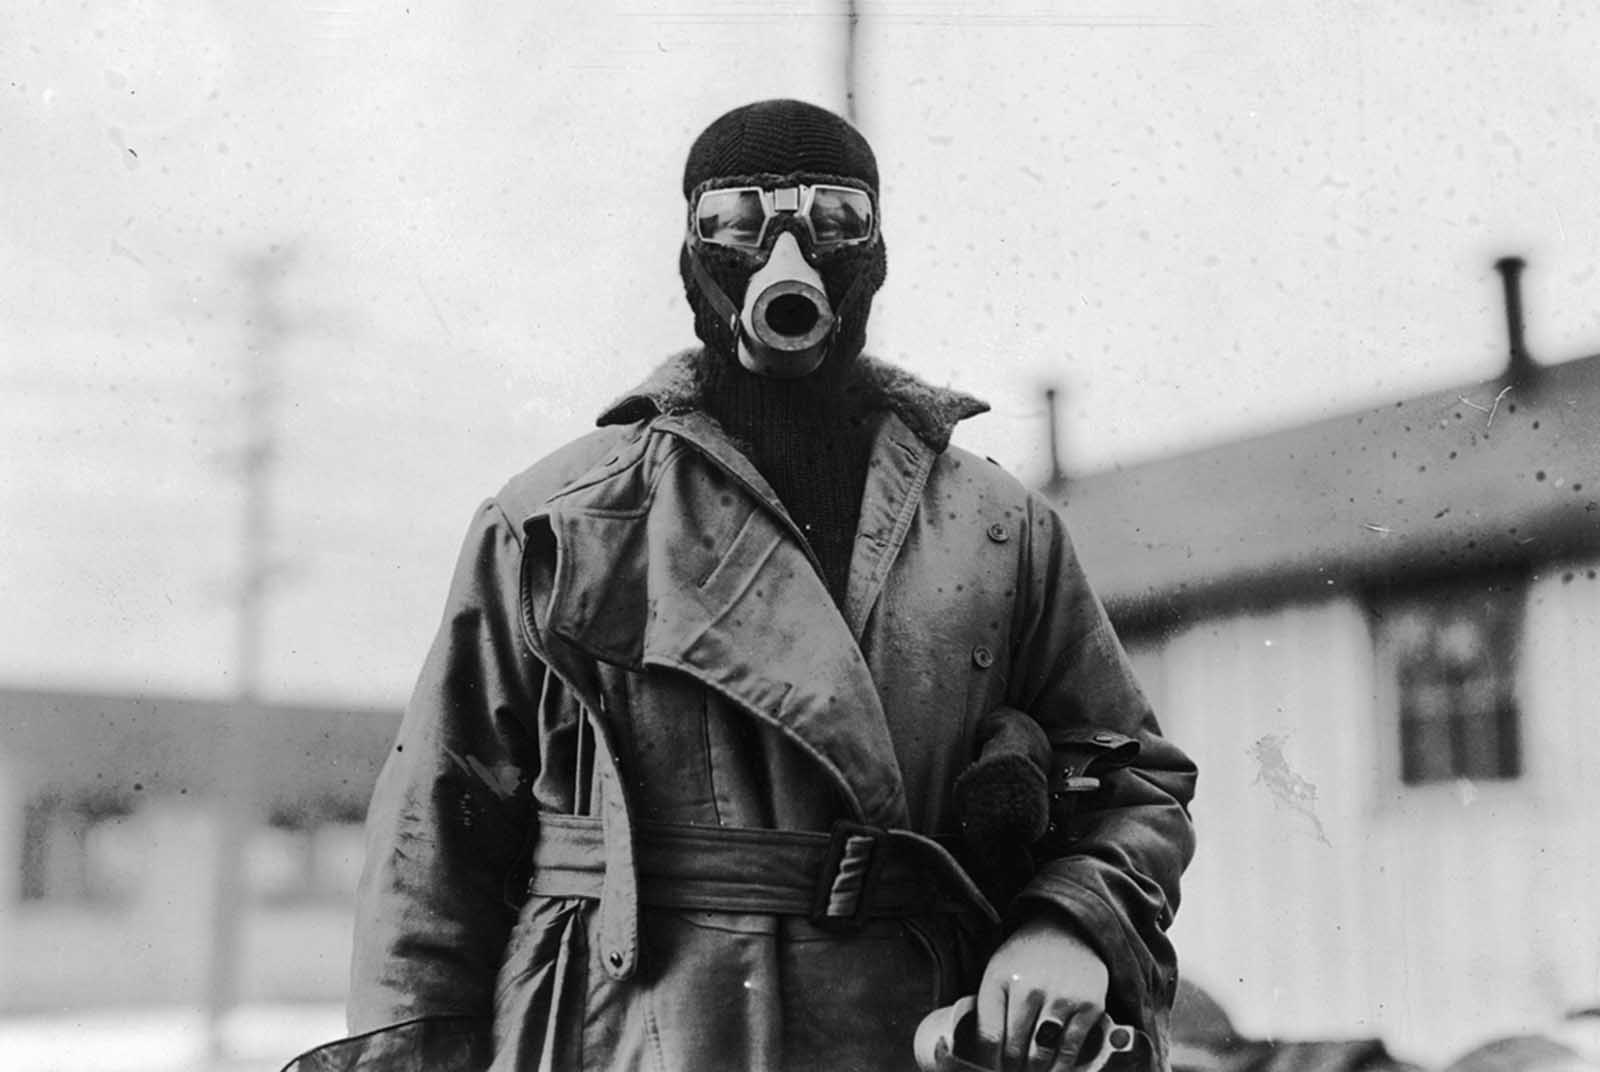 Unidentified pilot wearing a type of breathing apparatus. Image taken by O.I.C Photographic Detachment, Hazelhurst Field, Long Island, New York.